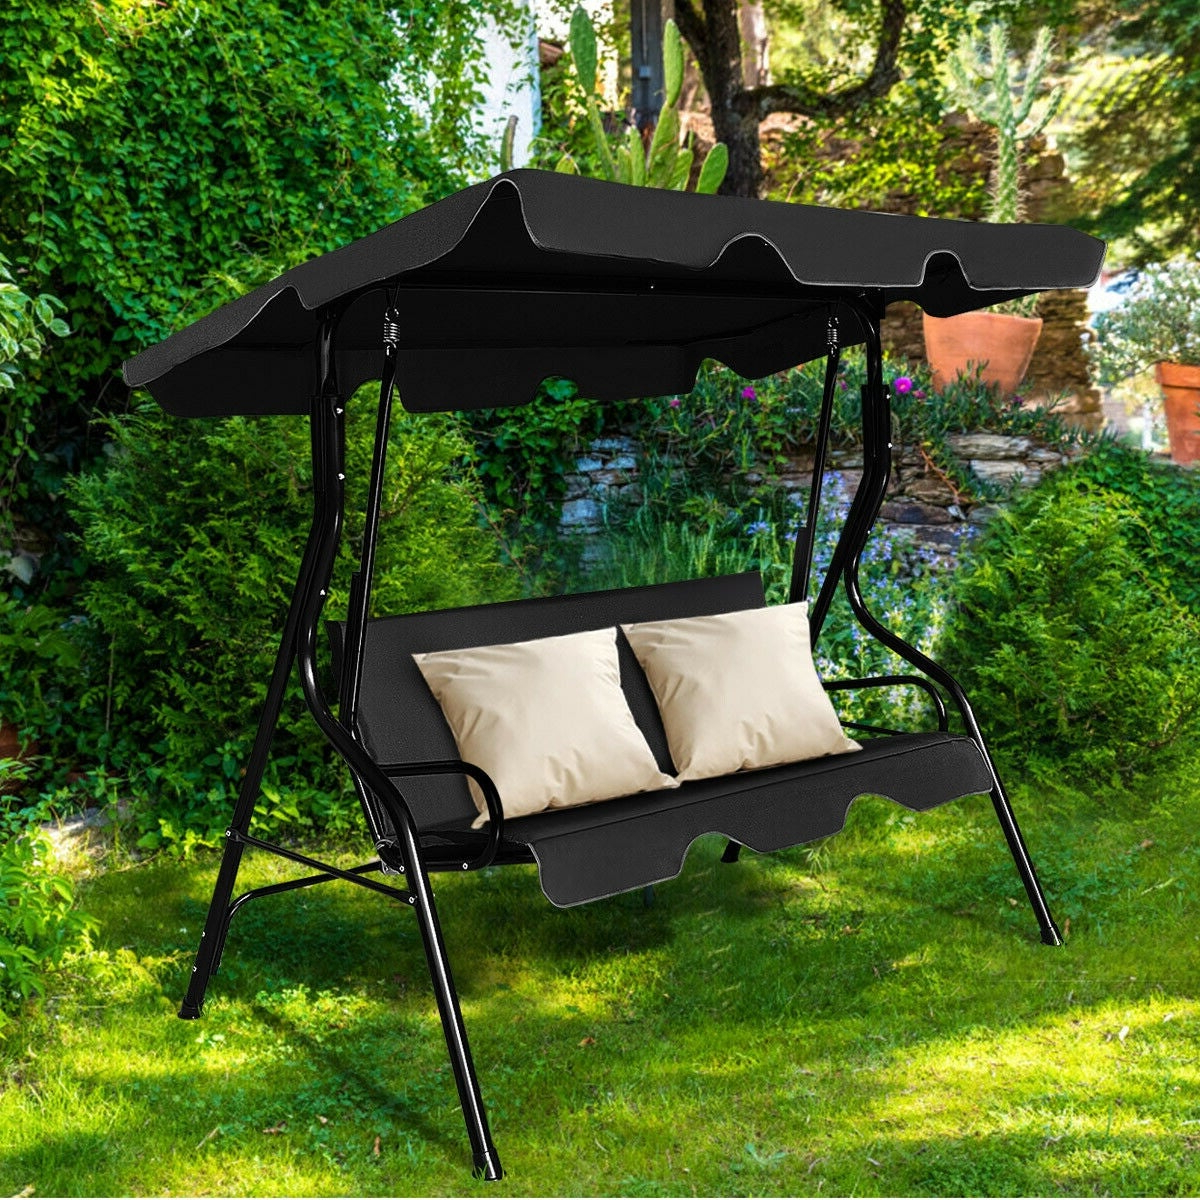 3 Seats Patio Canopy Swing Gliders Hammock Cushioned Steel Frame For Famous Costway 3 Seats Patio Canopy Swing Glider Hammock Cushioned Steel Frame Backyar Black (View 2 of 25)